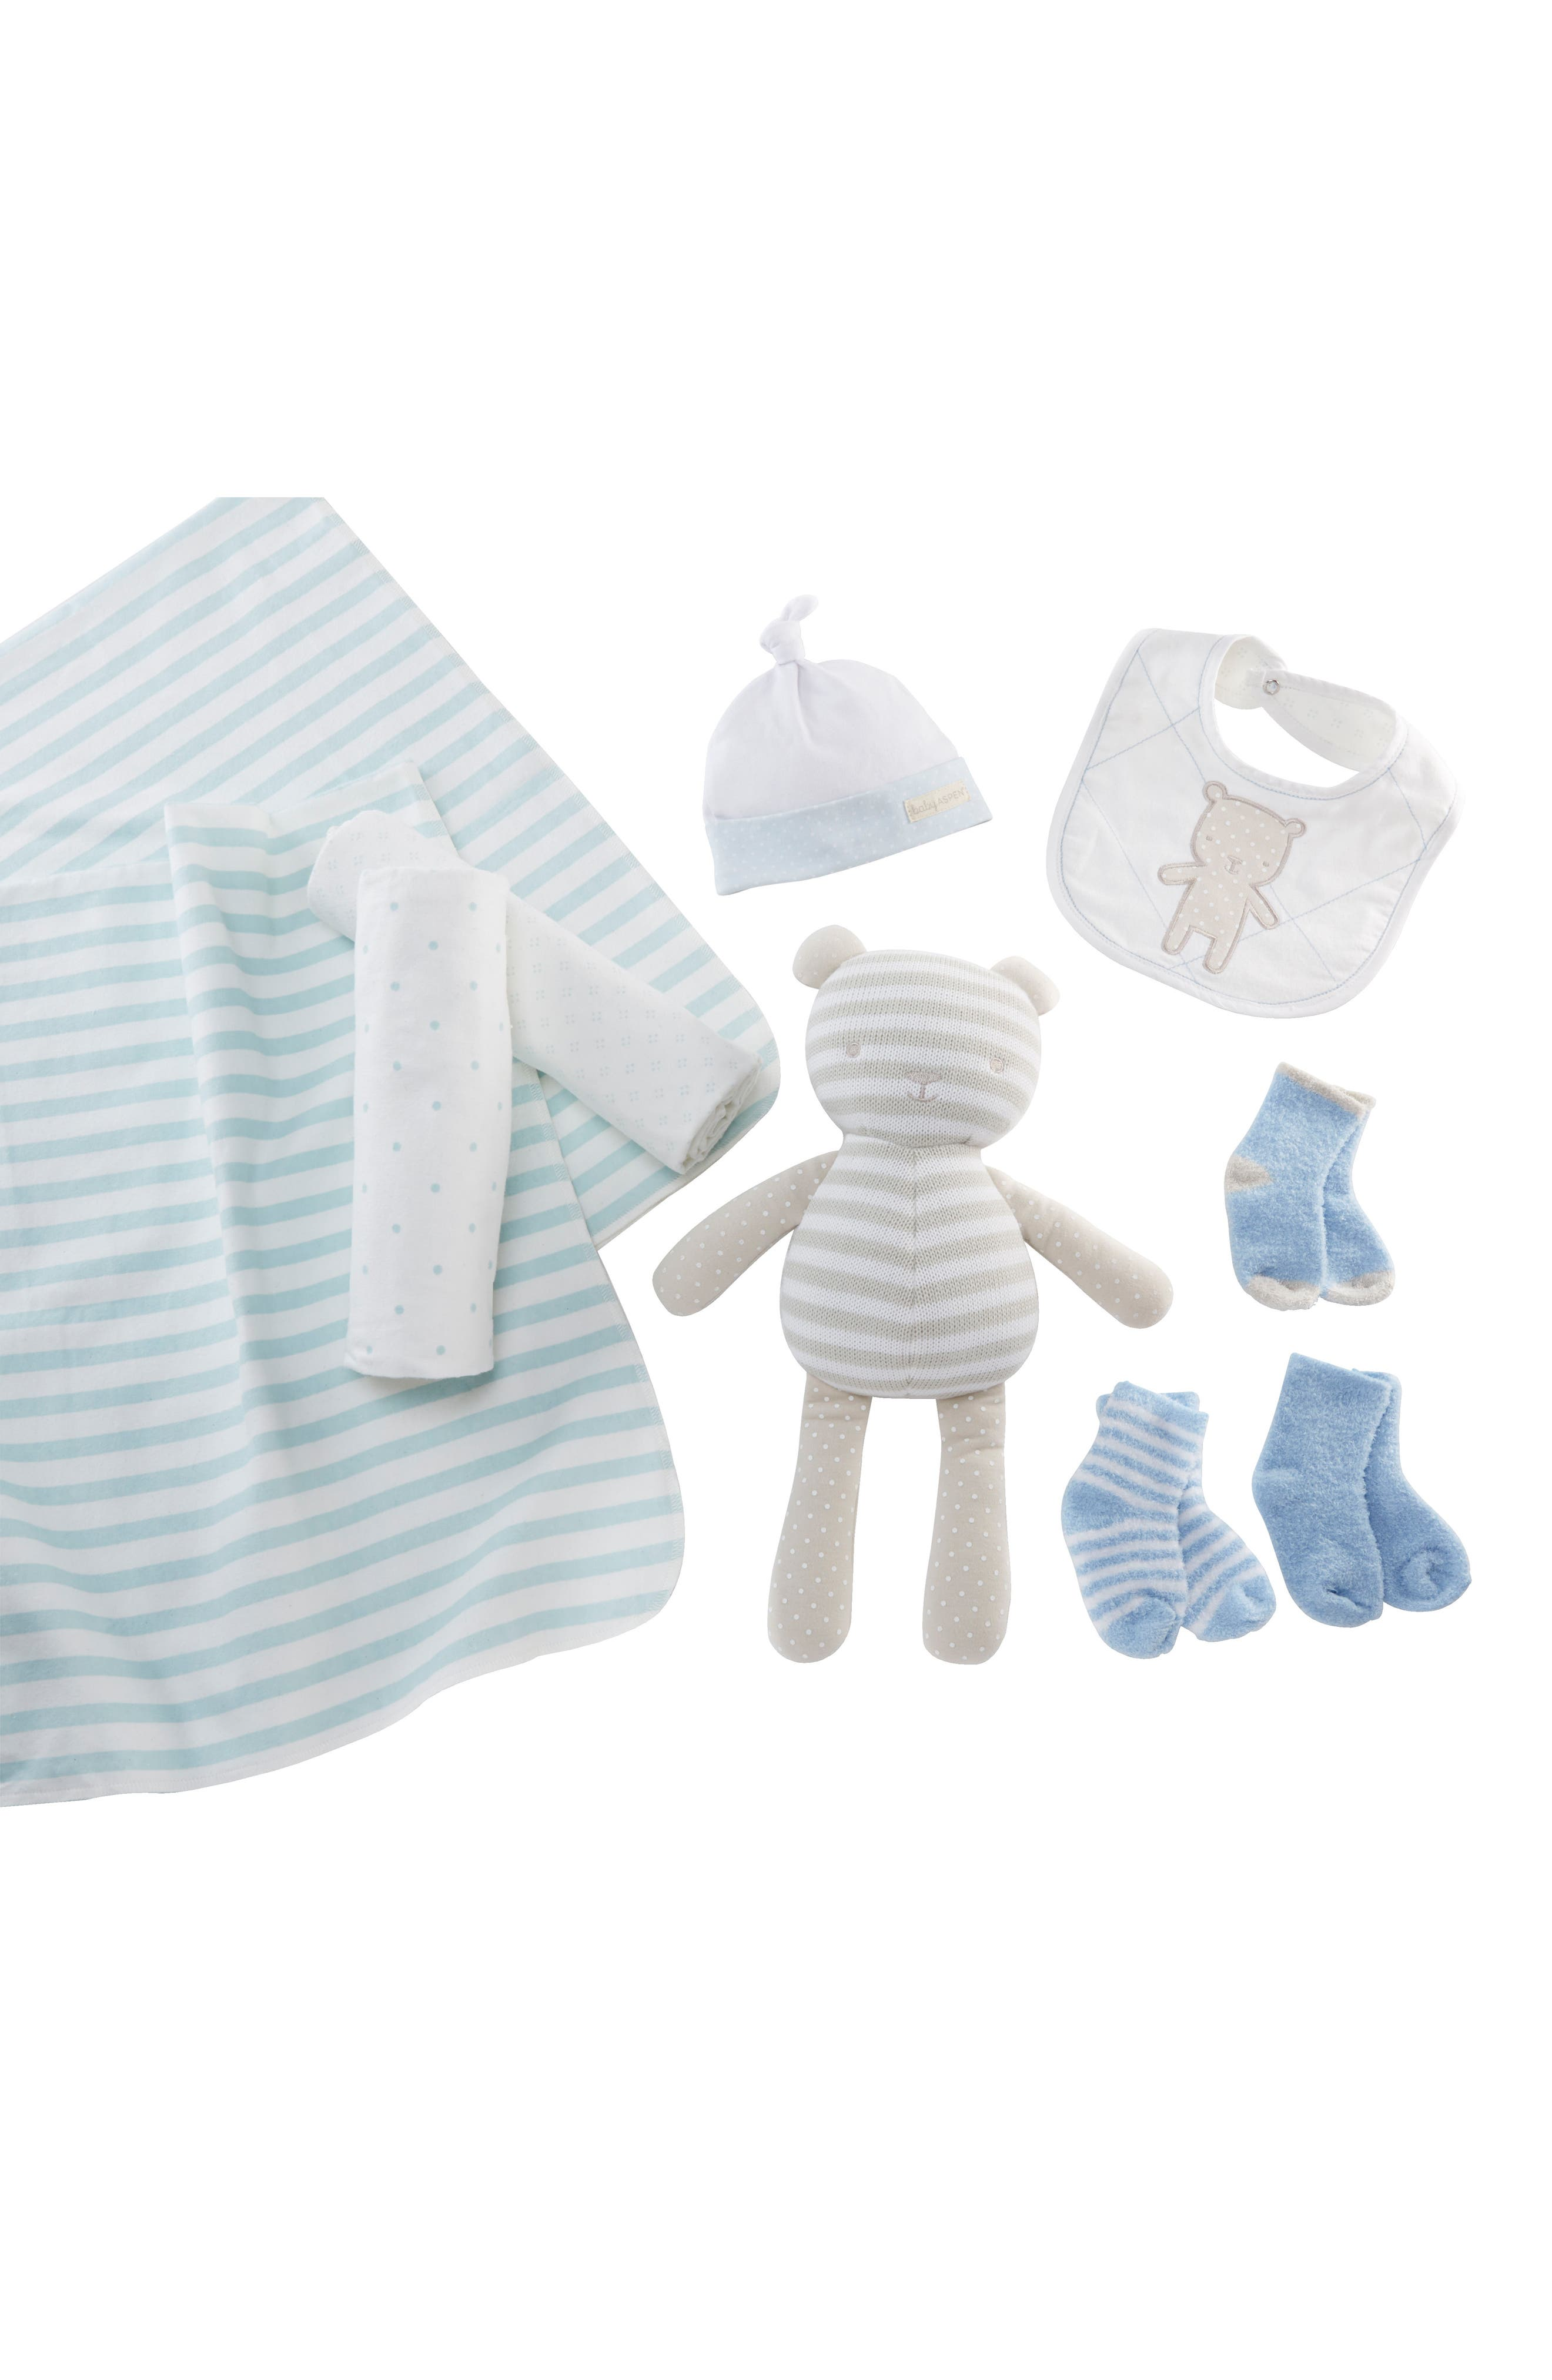 BABY ASPEN,                             Beary Special 10-Piece Gift Set,                             Main thumbnail 1, color,                             BLUE